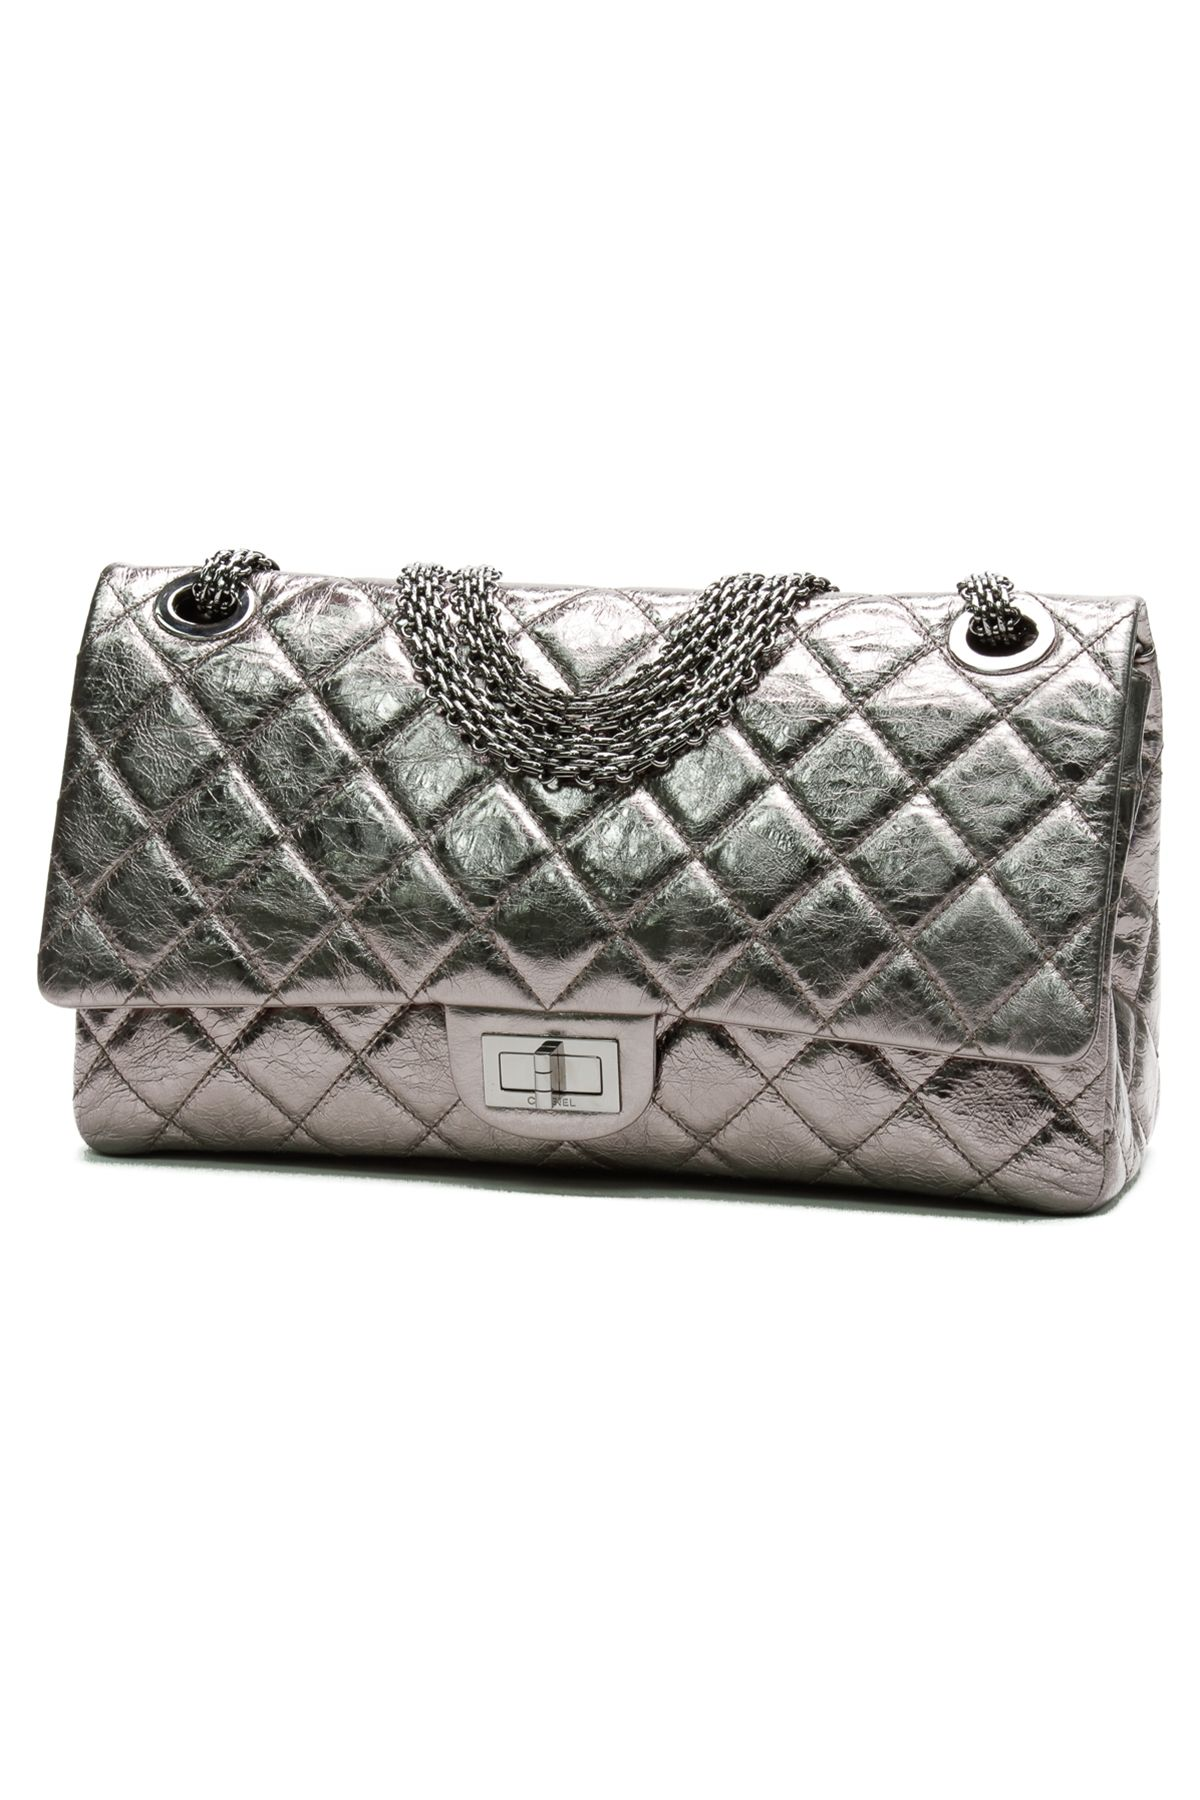 52f86d5890af7e Chanel Metallic Silver Calfskin Reissue 228 Flap Handbag | Put The ...